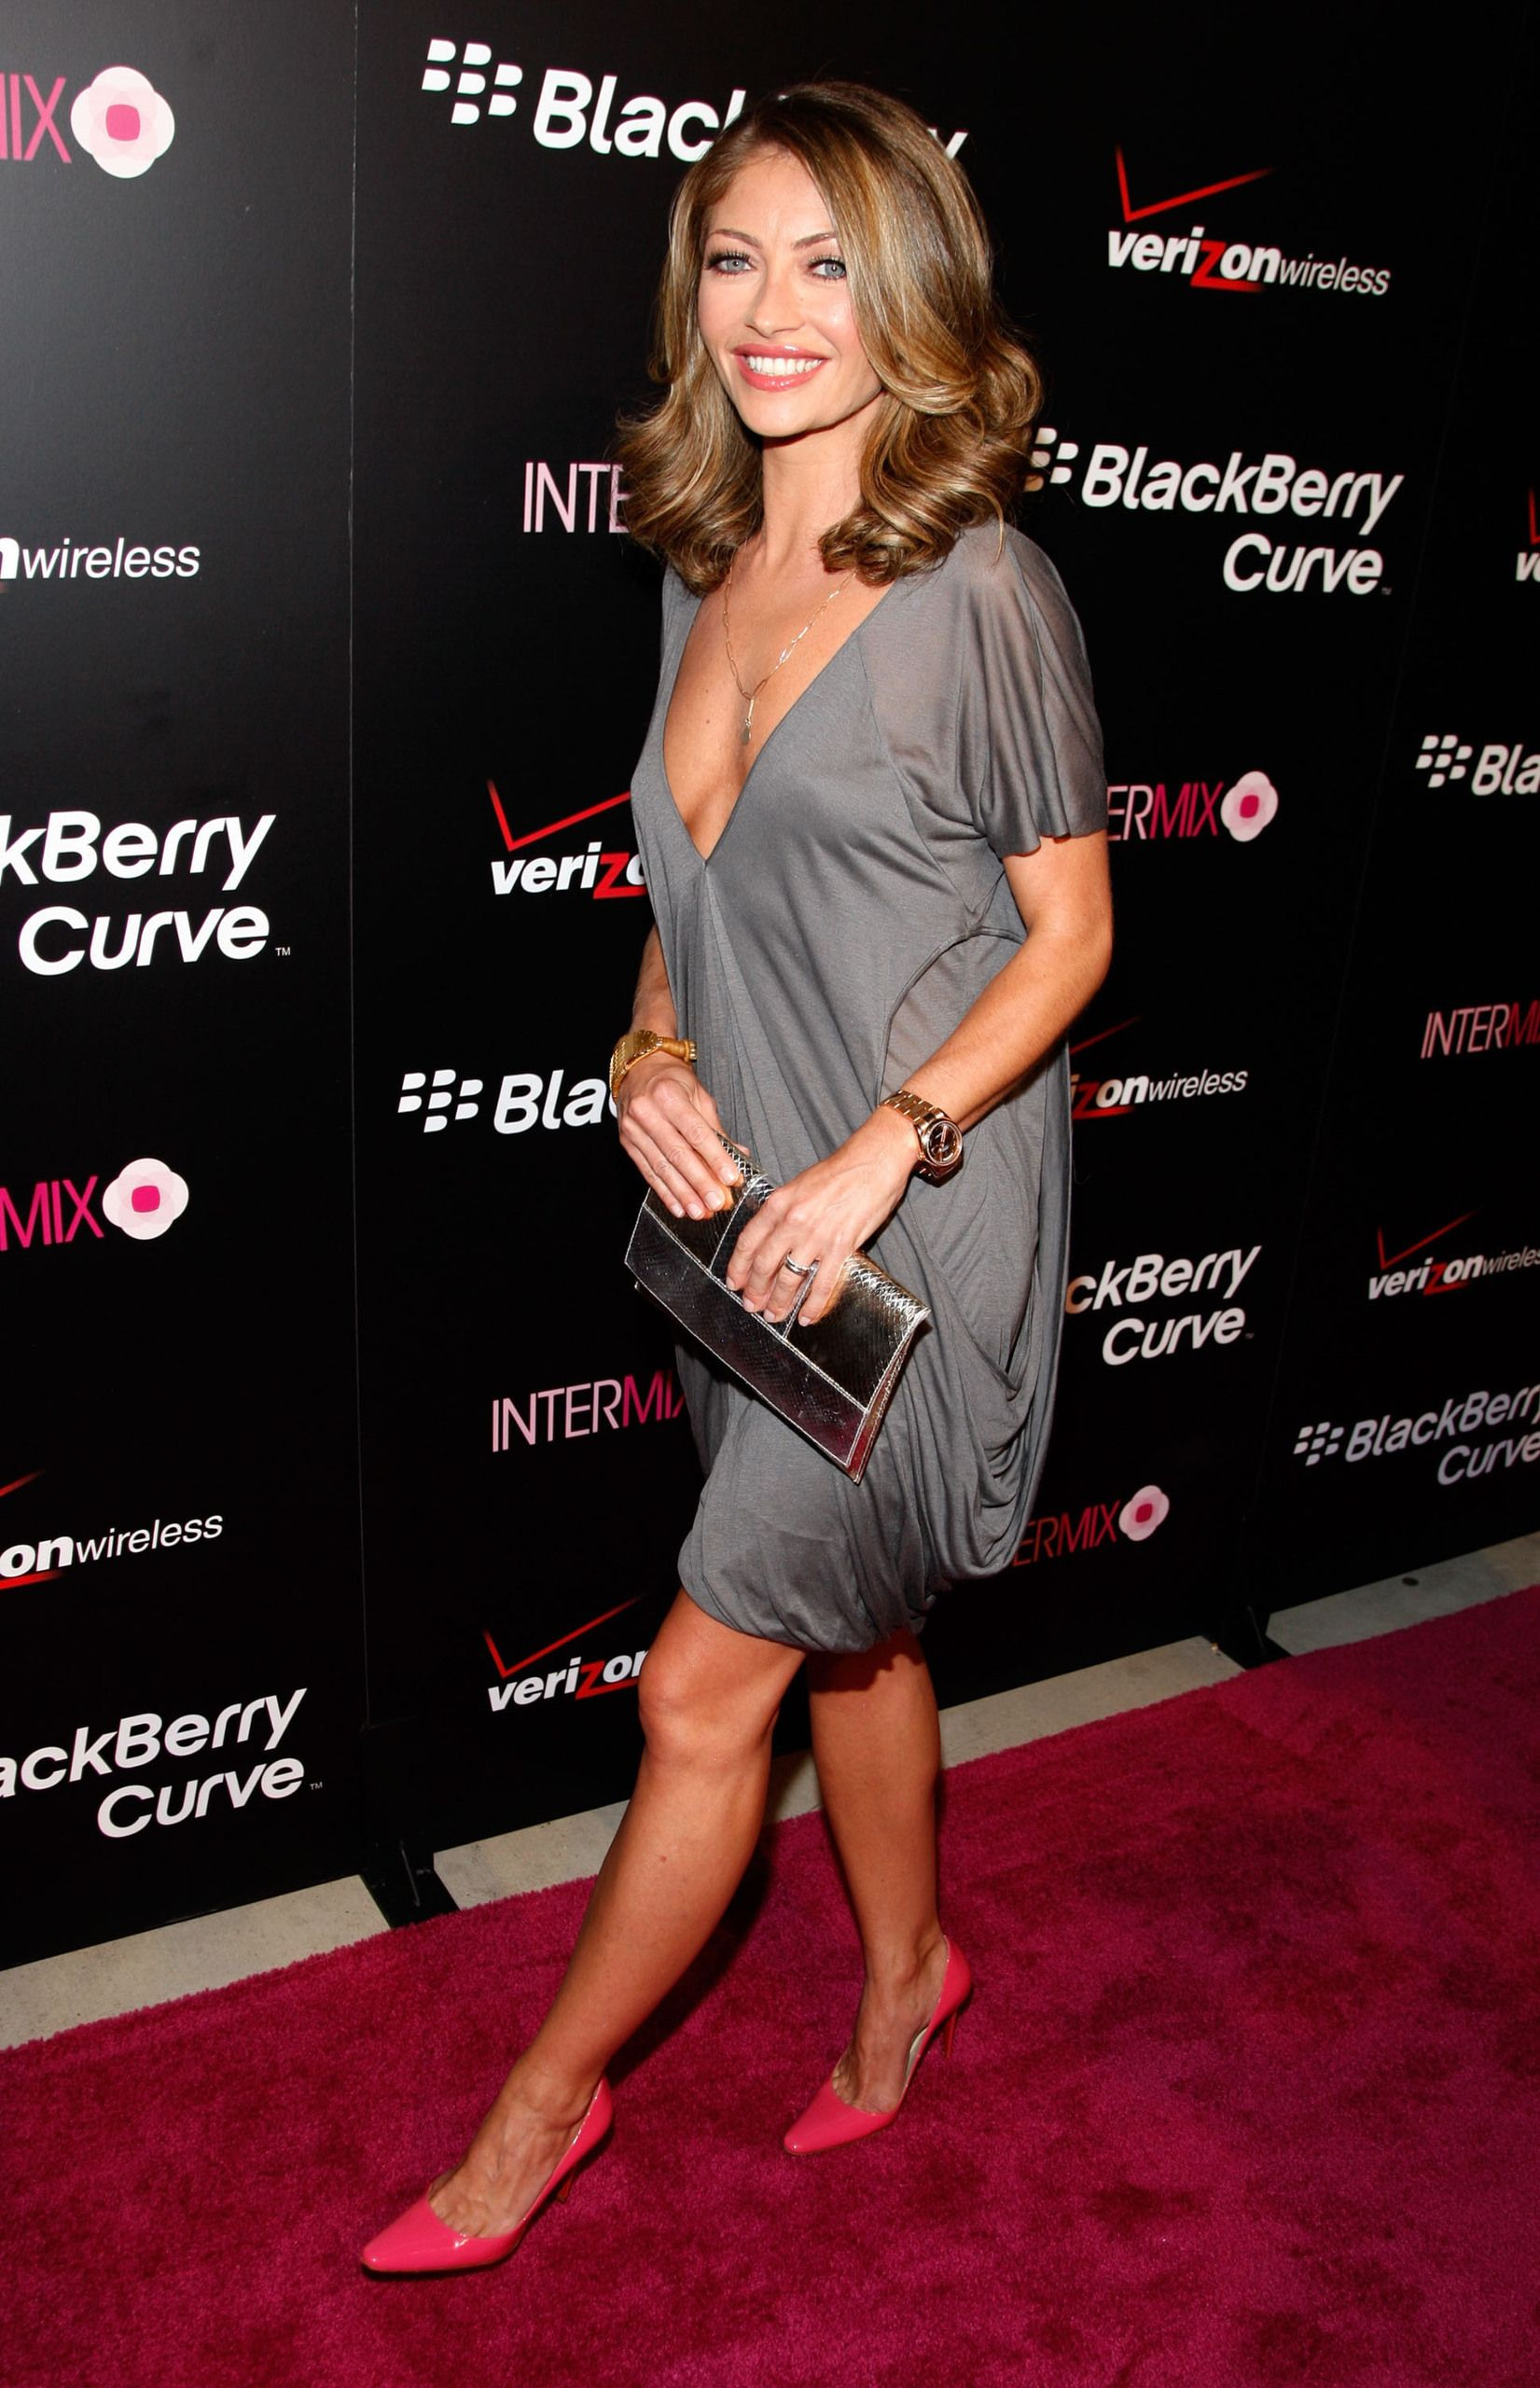 Feet Rebecca Gayheart nudes (21 photos), Pussy, Fappening, Twitter, cleavage 2017